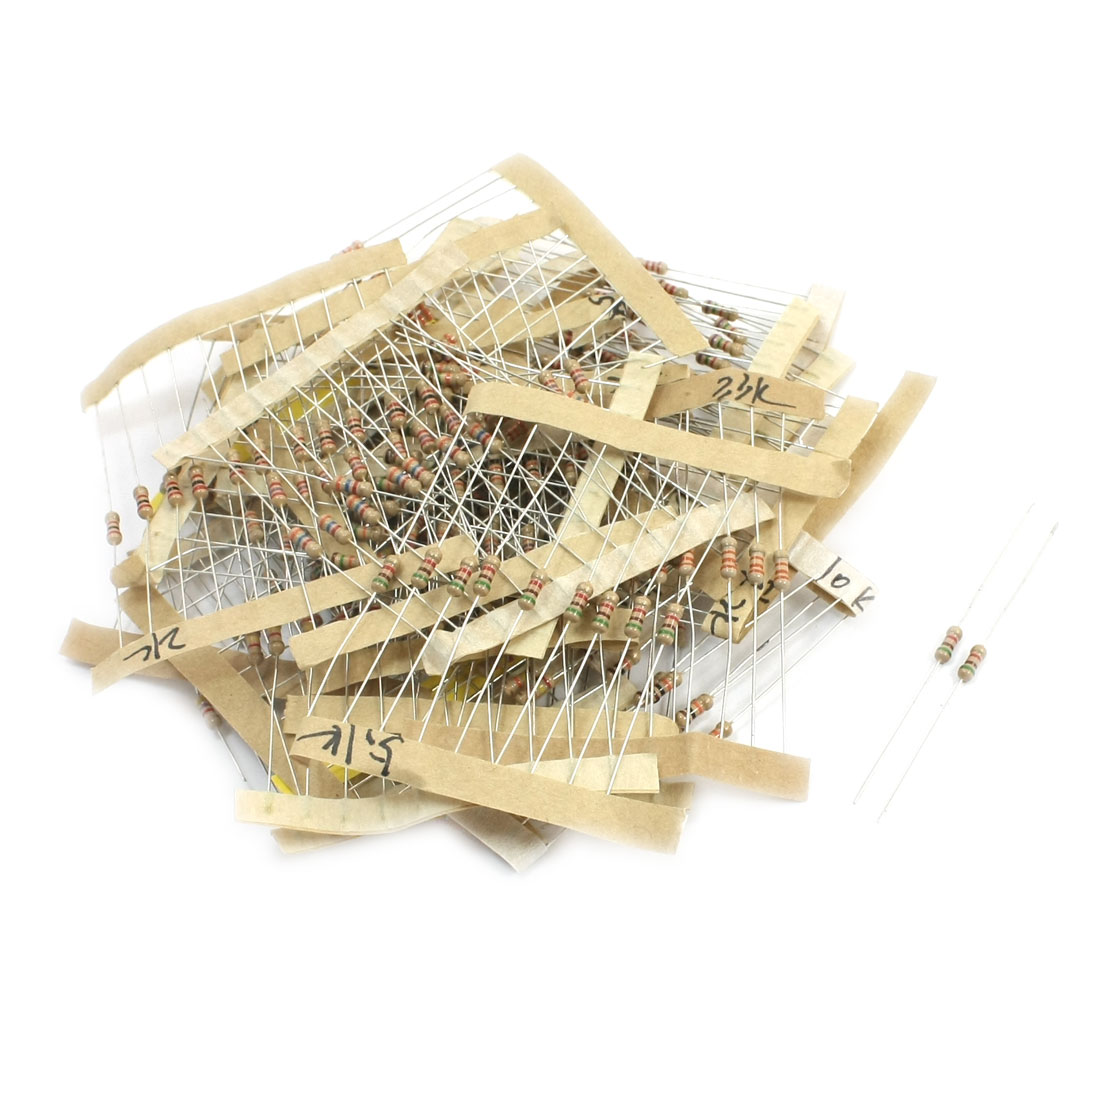 250Pcs 1K-33K Ohm Resistance 0.25W Power 5% Tolerance Axial Lead Type Through Hole Mounting Carbon Film Resistor